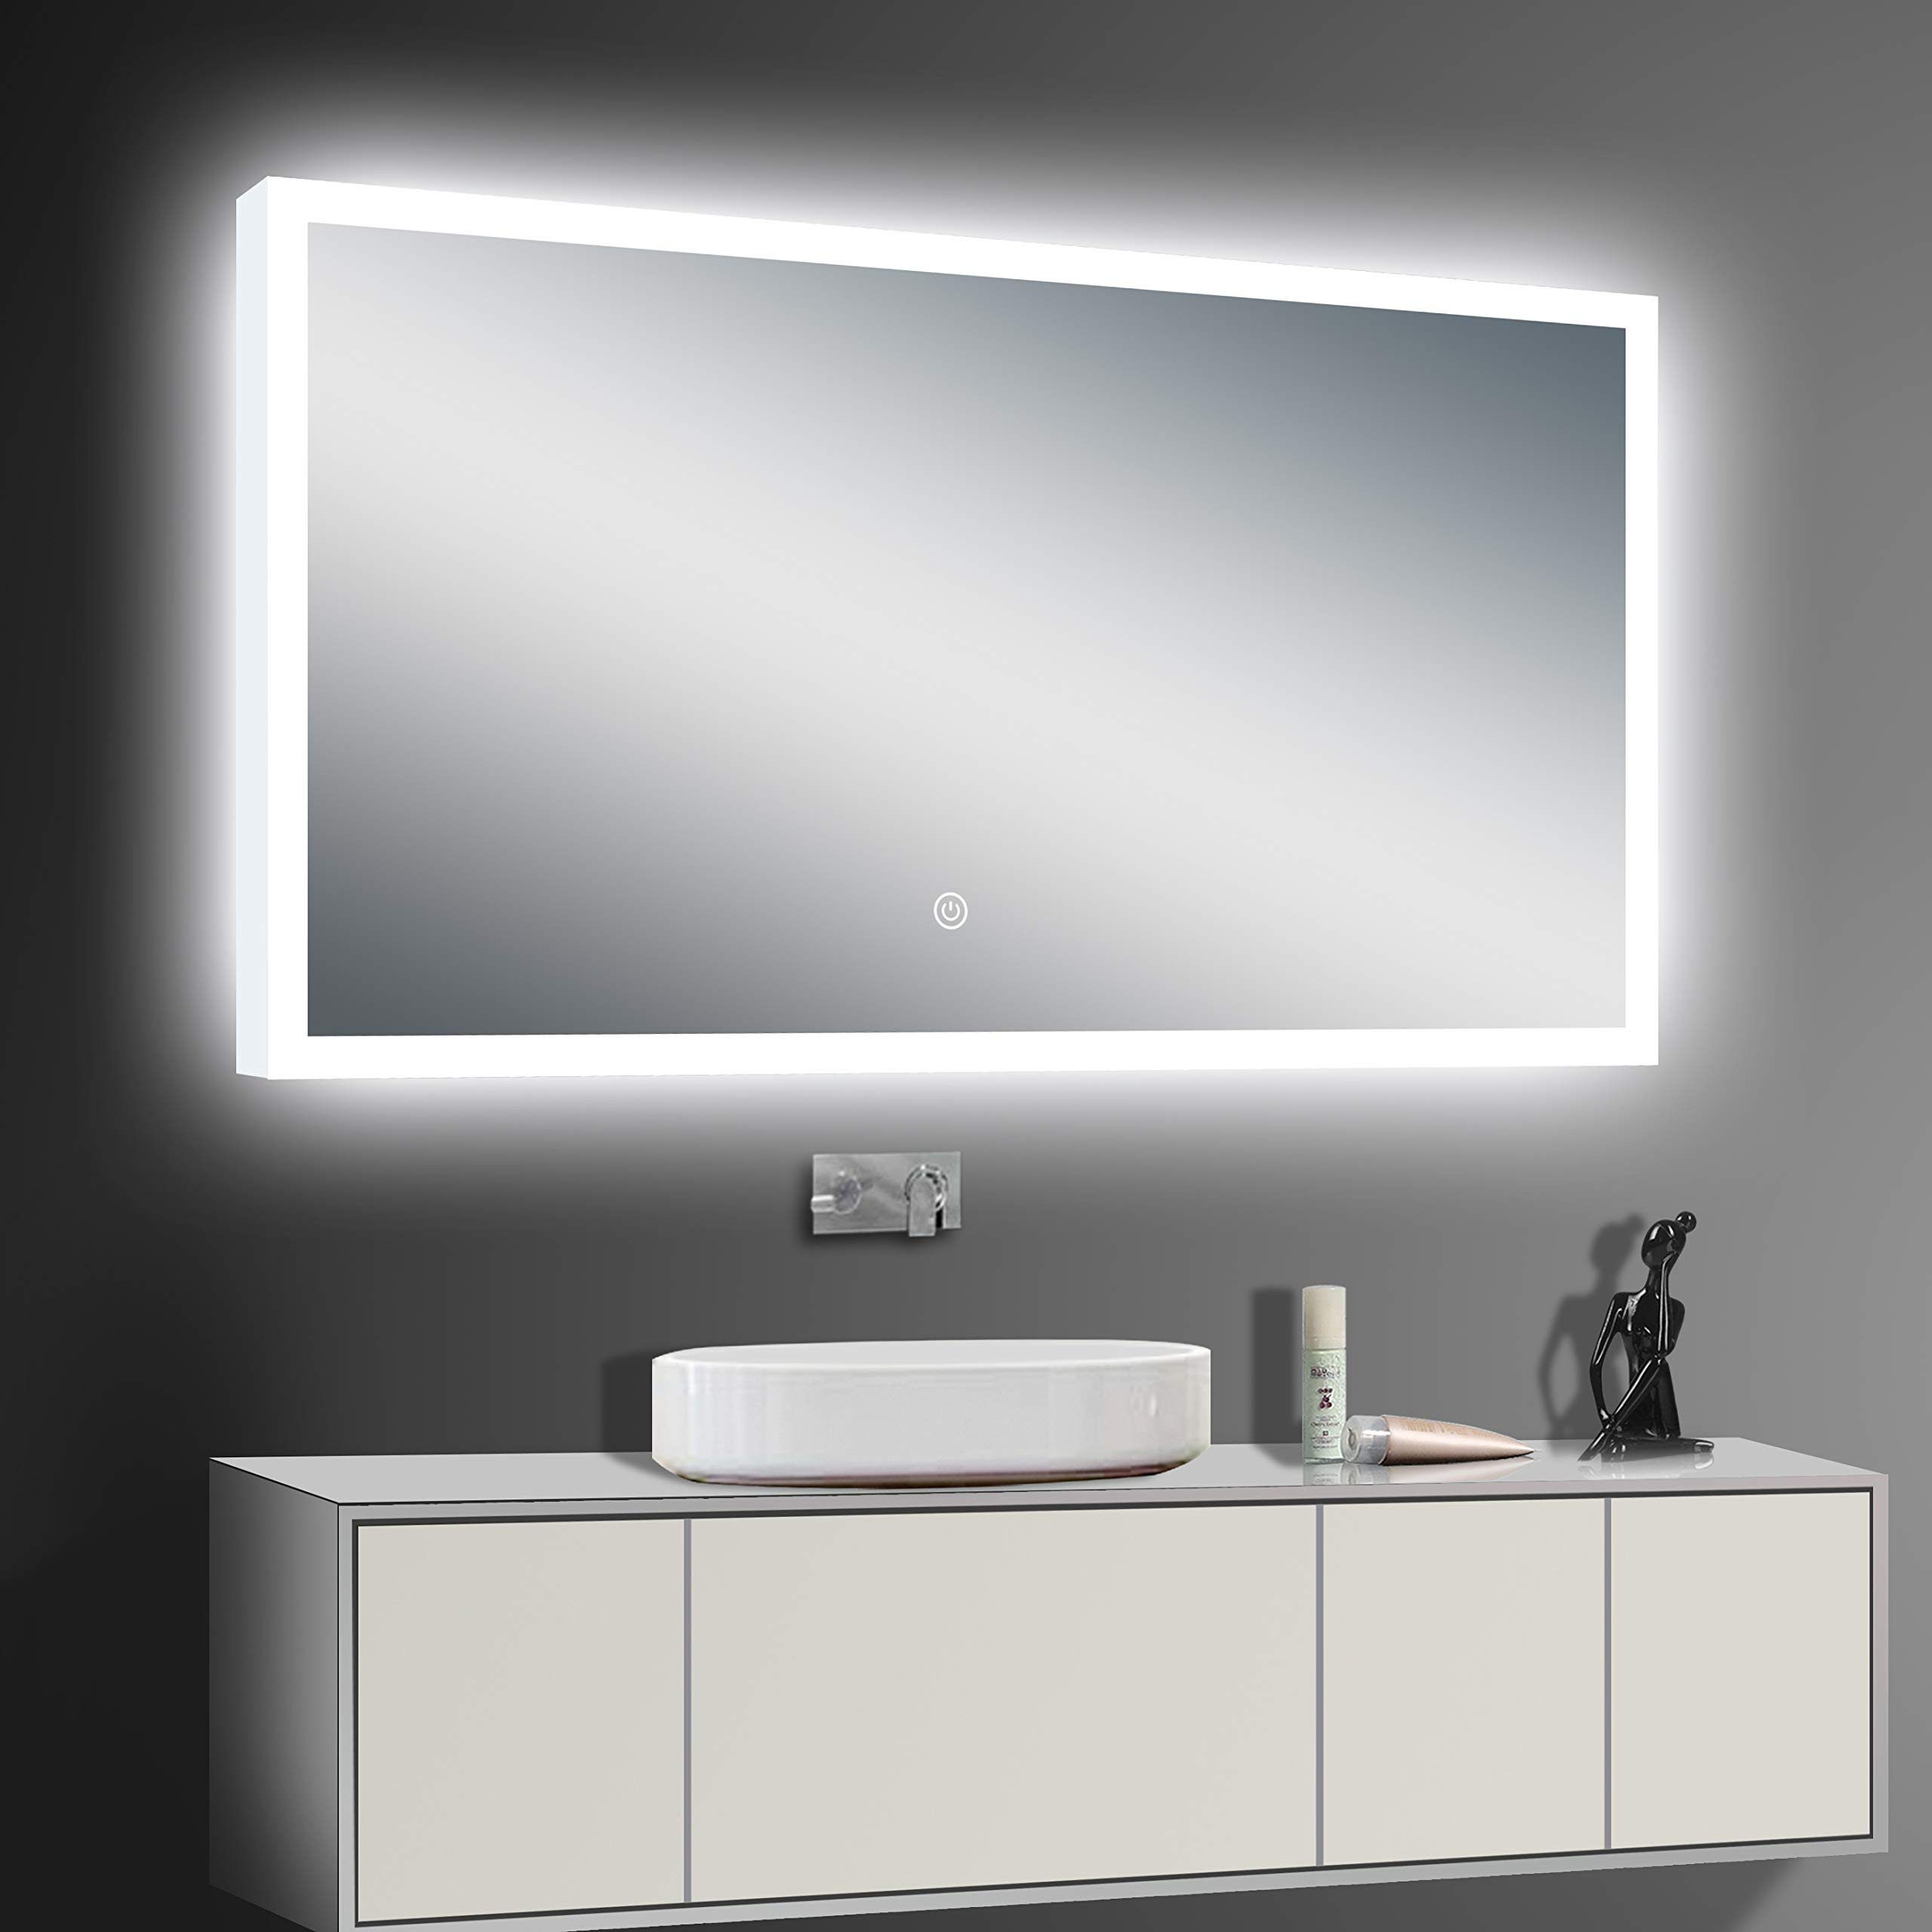 LED Backlit Illuminated Mirror 60''. Wall Mounted for Bathroom, Makeup. Hardwired and Easy to Install. Bright White Light 20w Behind Rectangular Inset Frosted Glass for Flattering Glow by Renewal